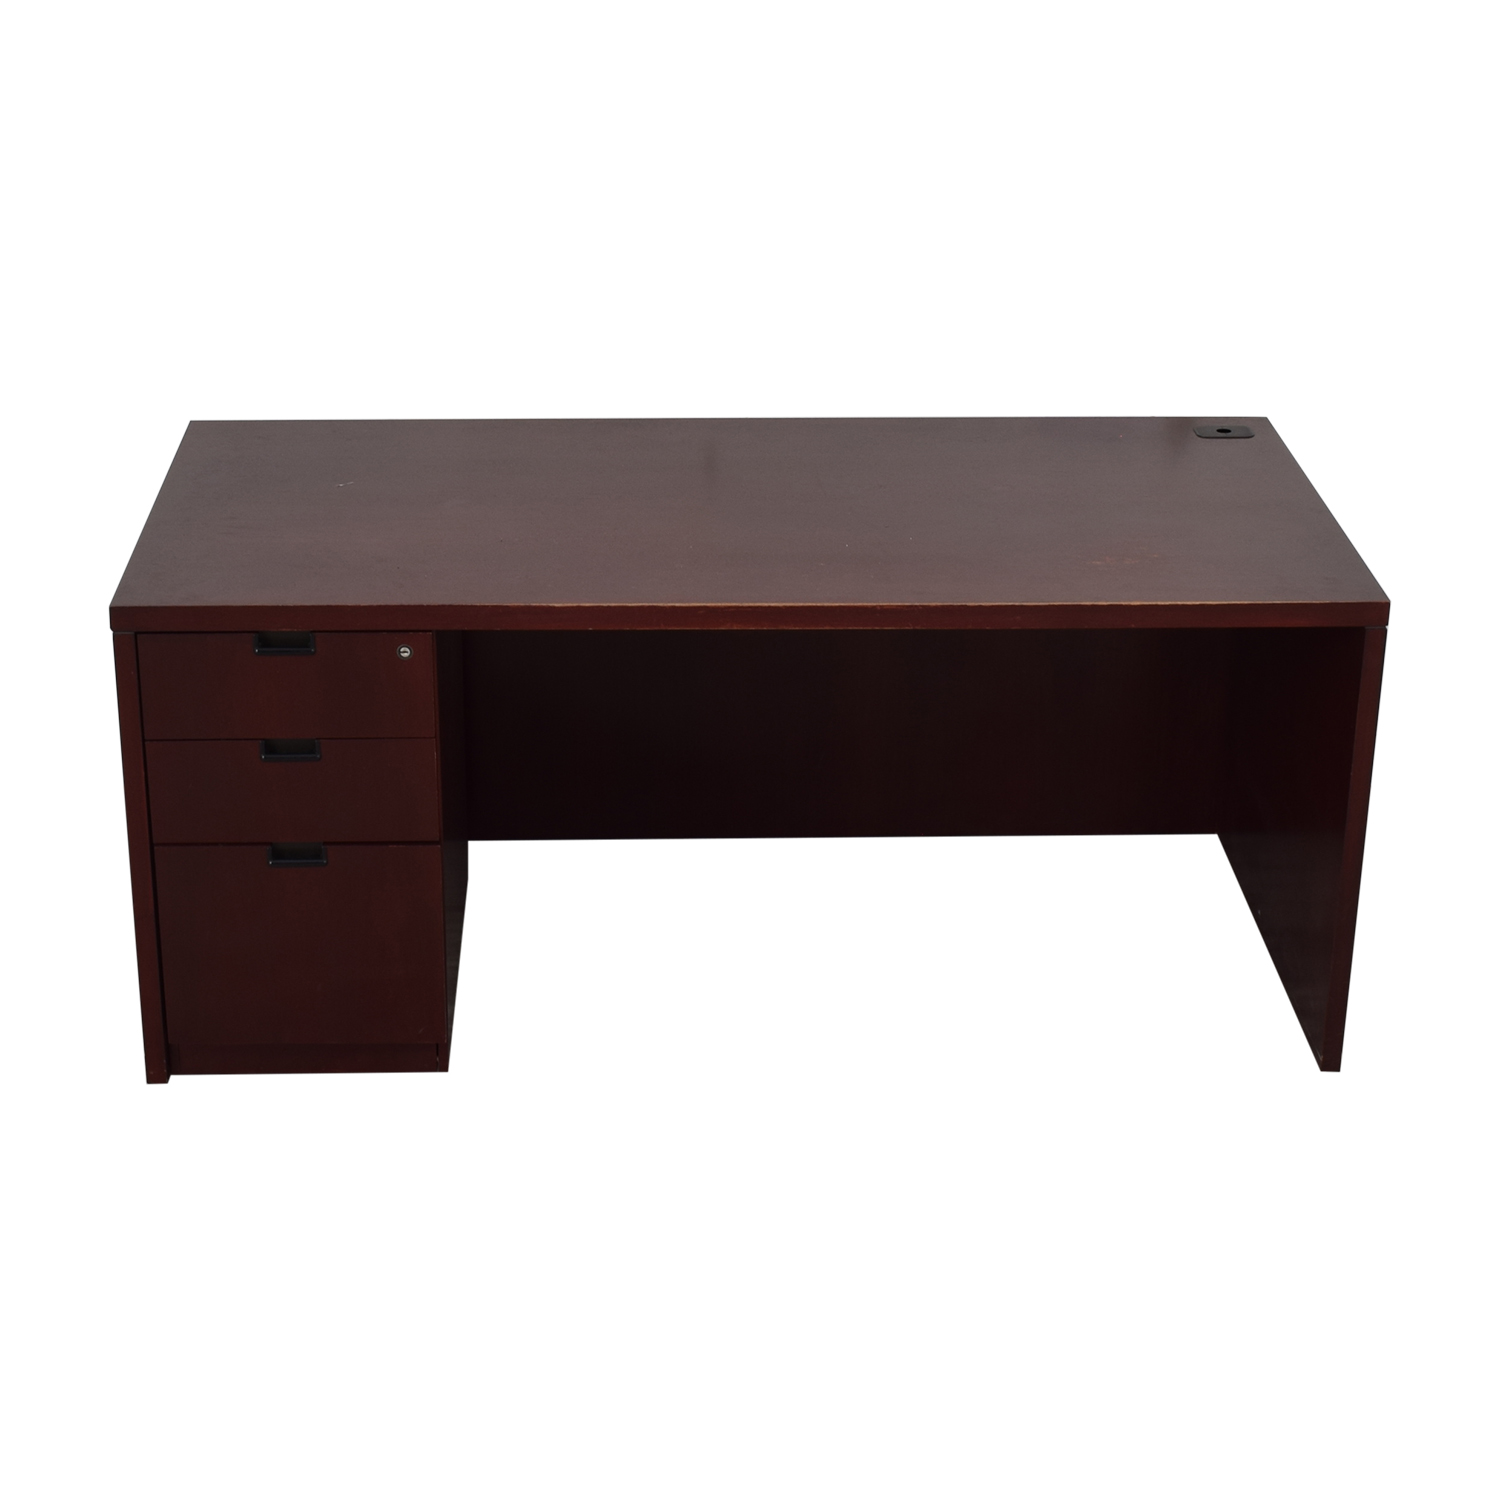 Three-Drawer Wood Desk coupon